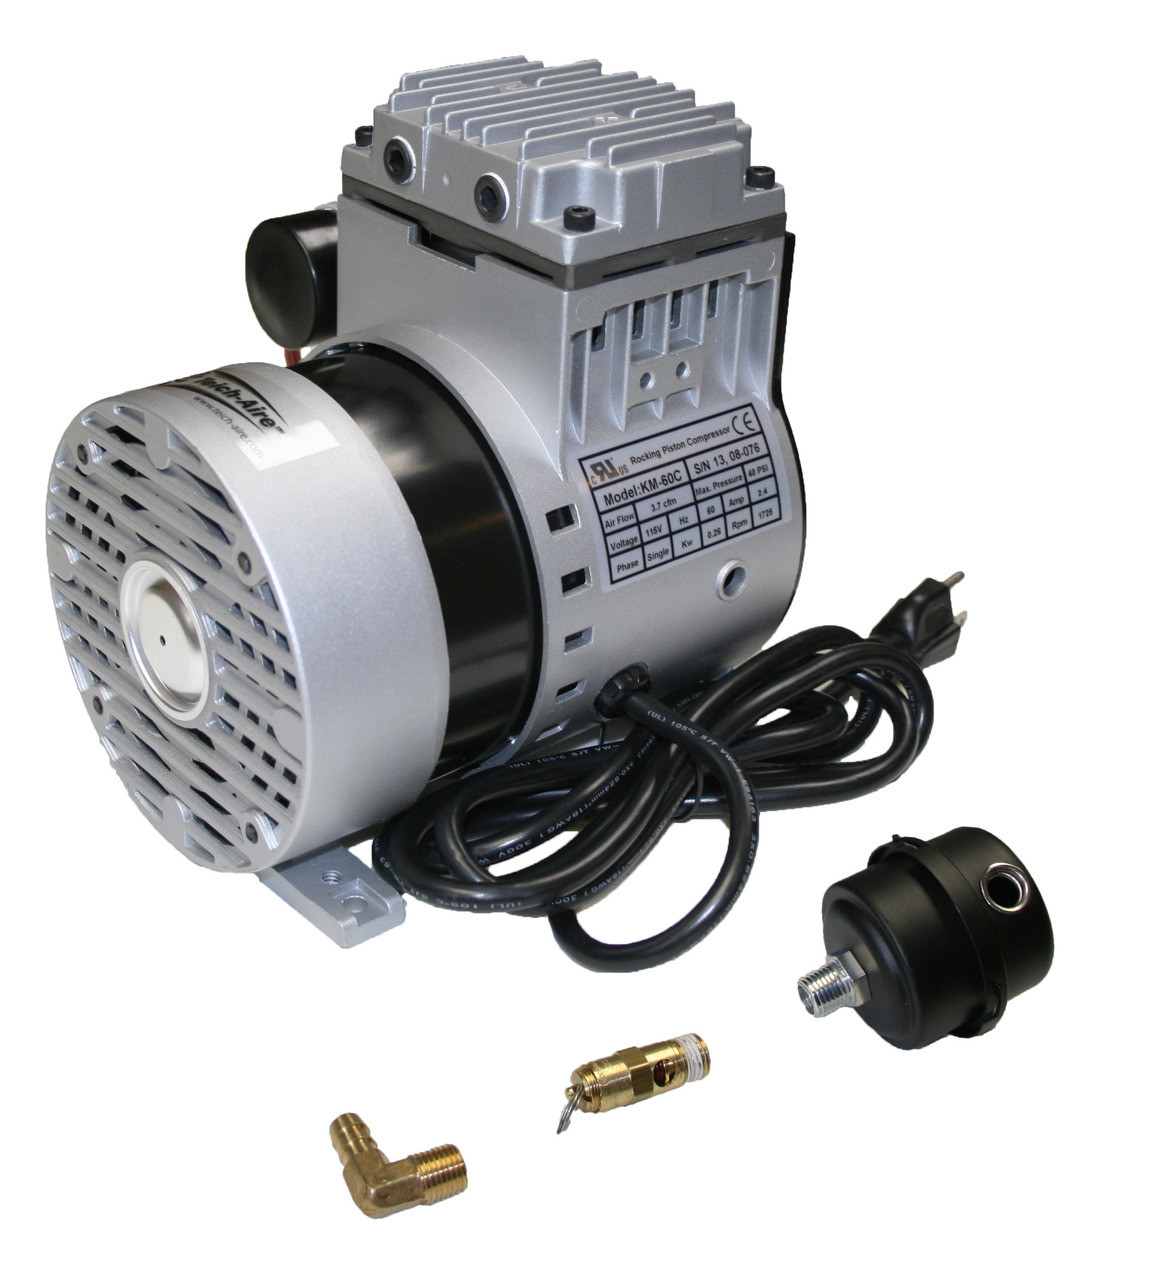 Kasco KM-60 1/4 hp Piston Pump 3.7 cfm